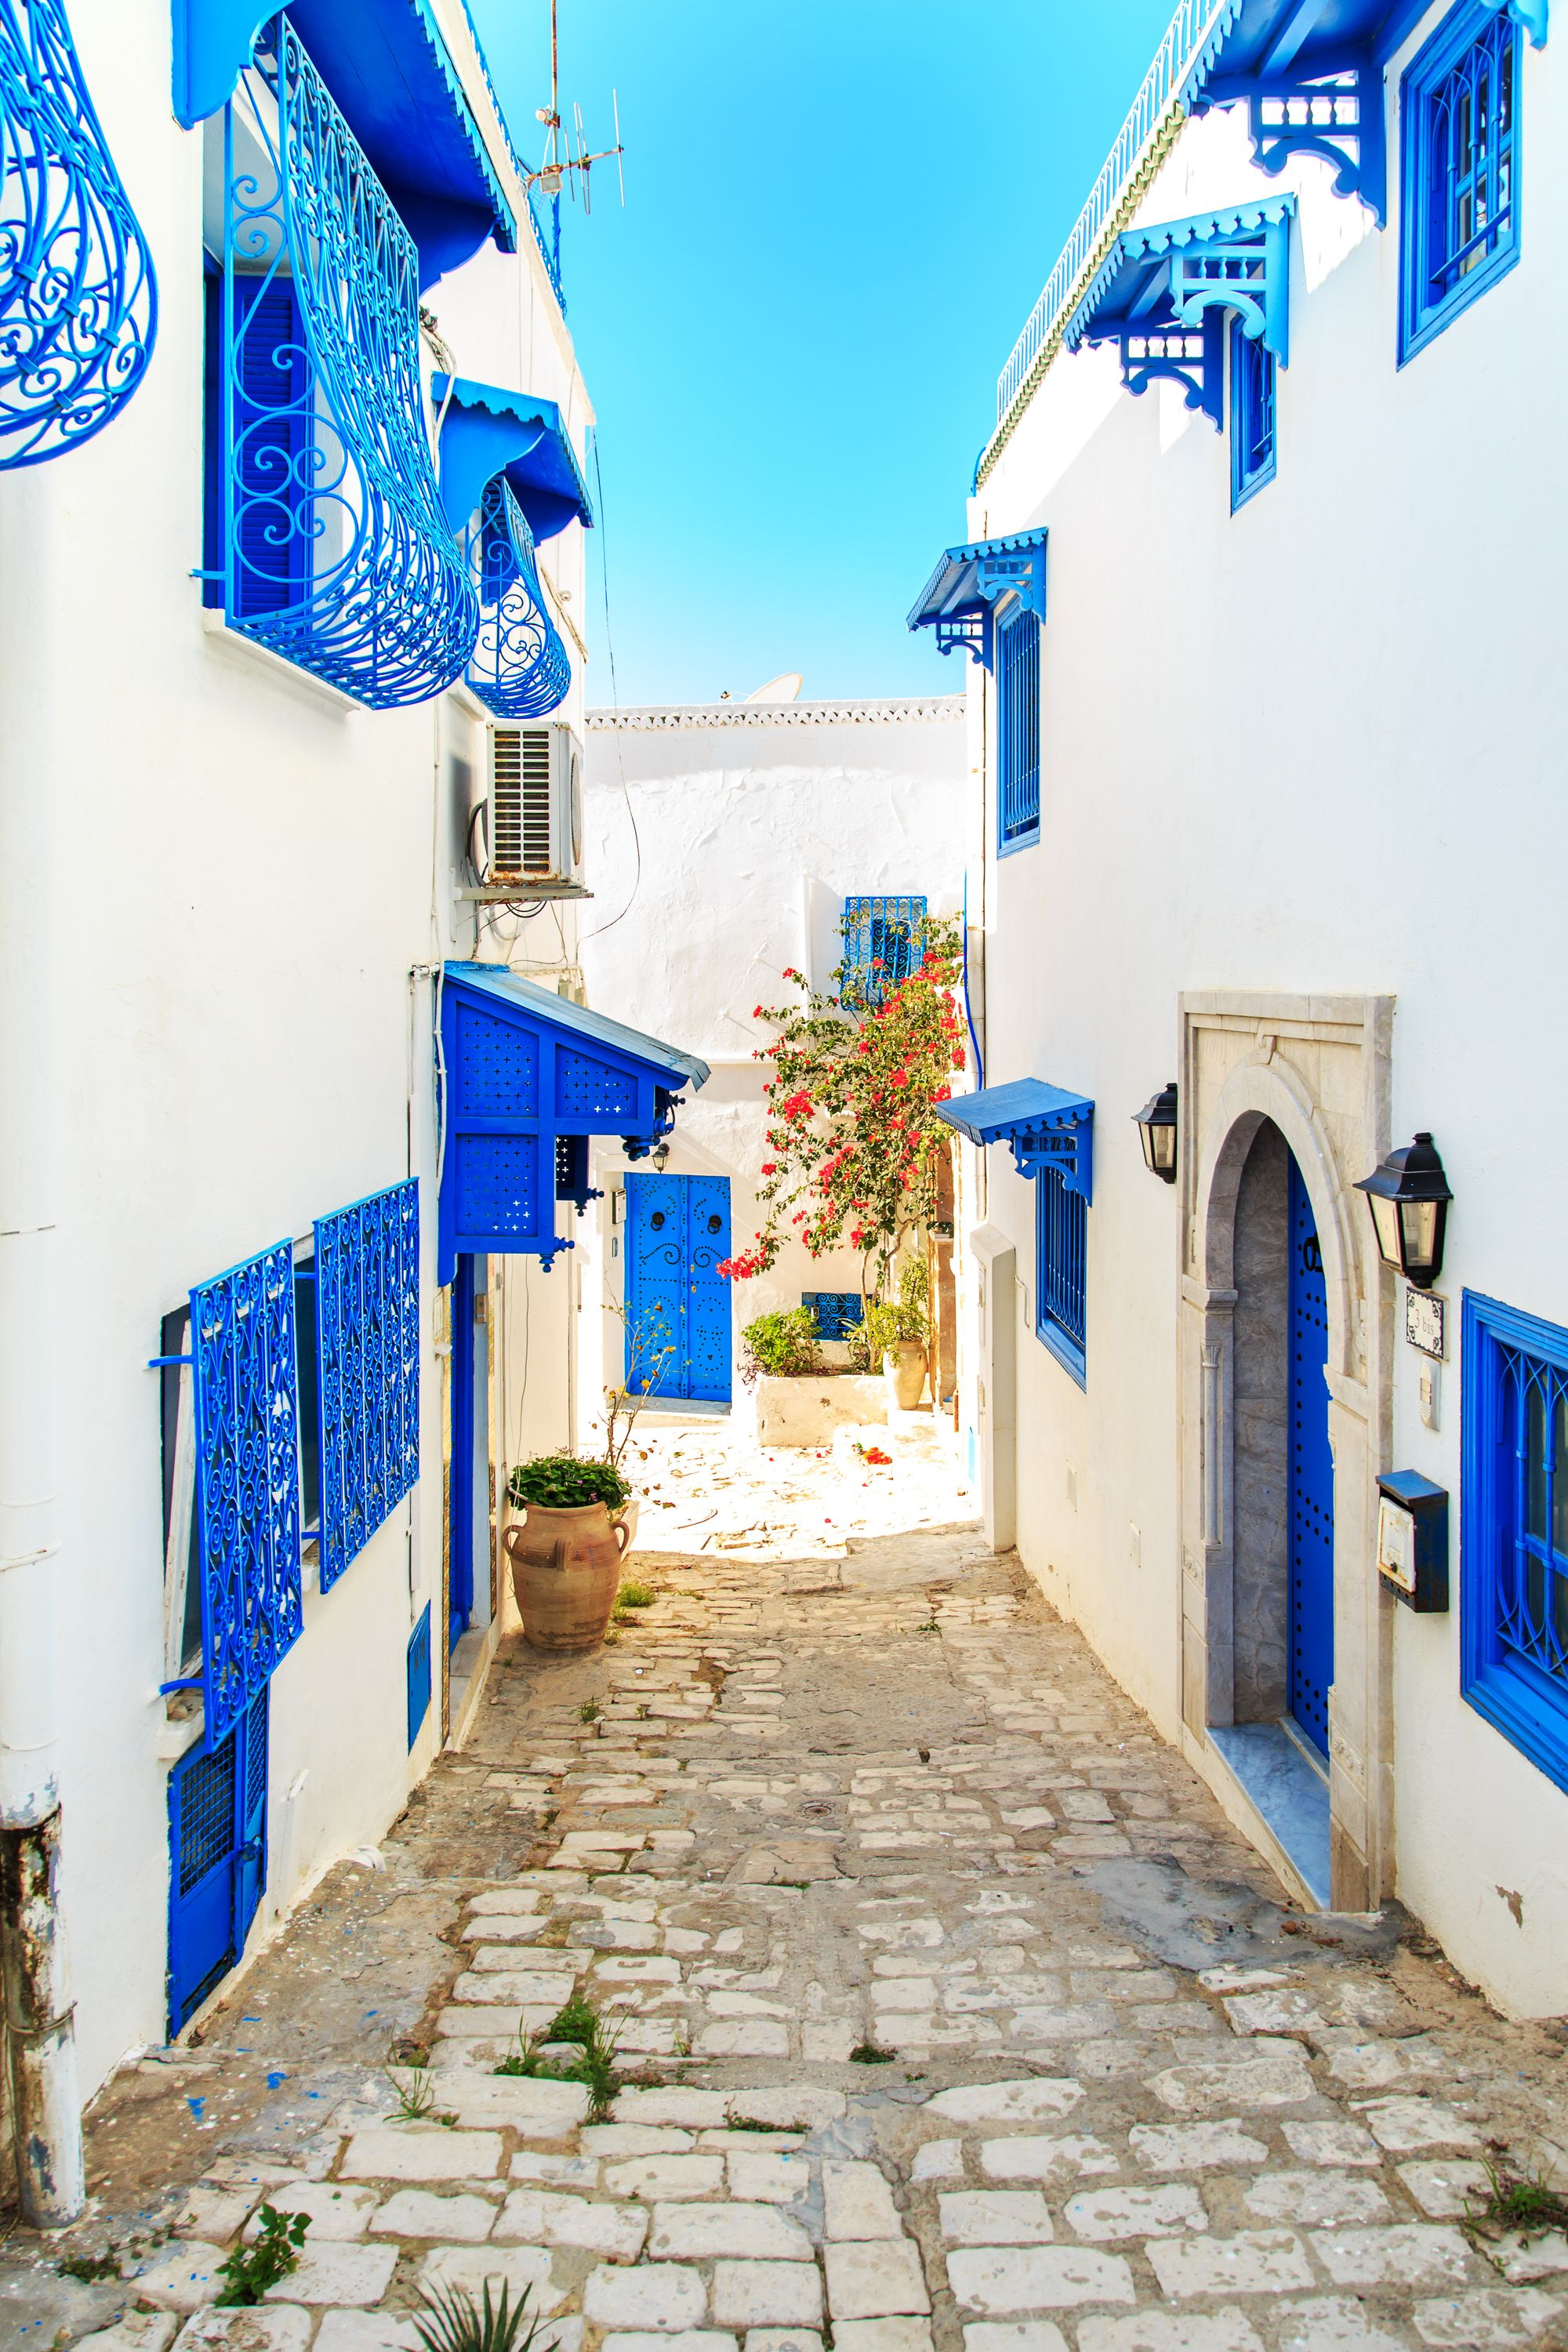 Sidi Bou Saïd: the meeting place for artists